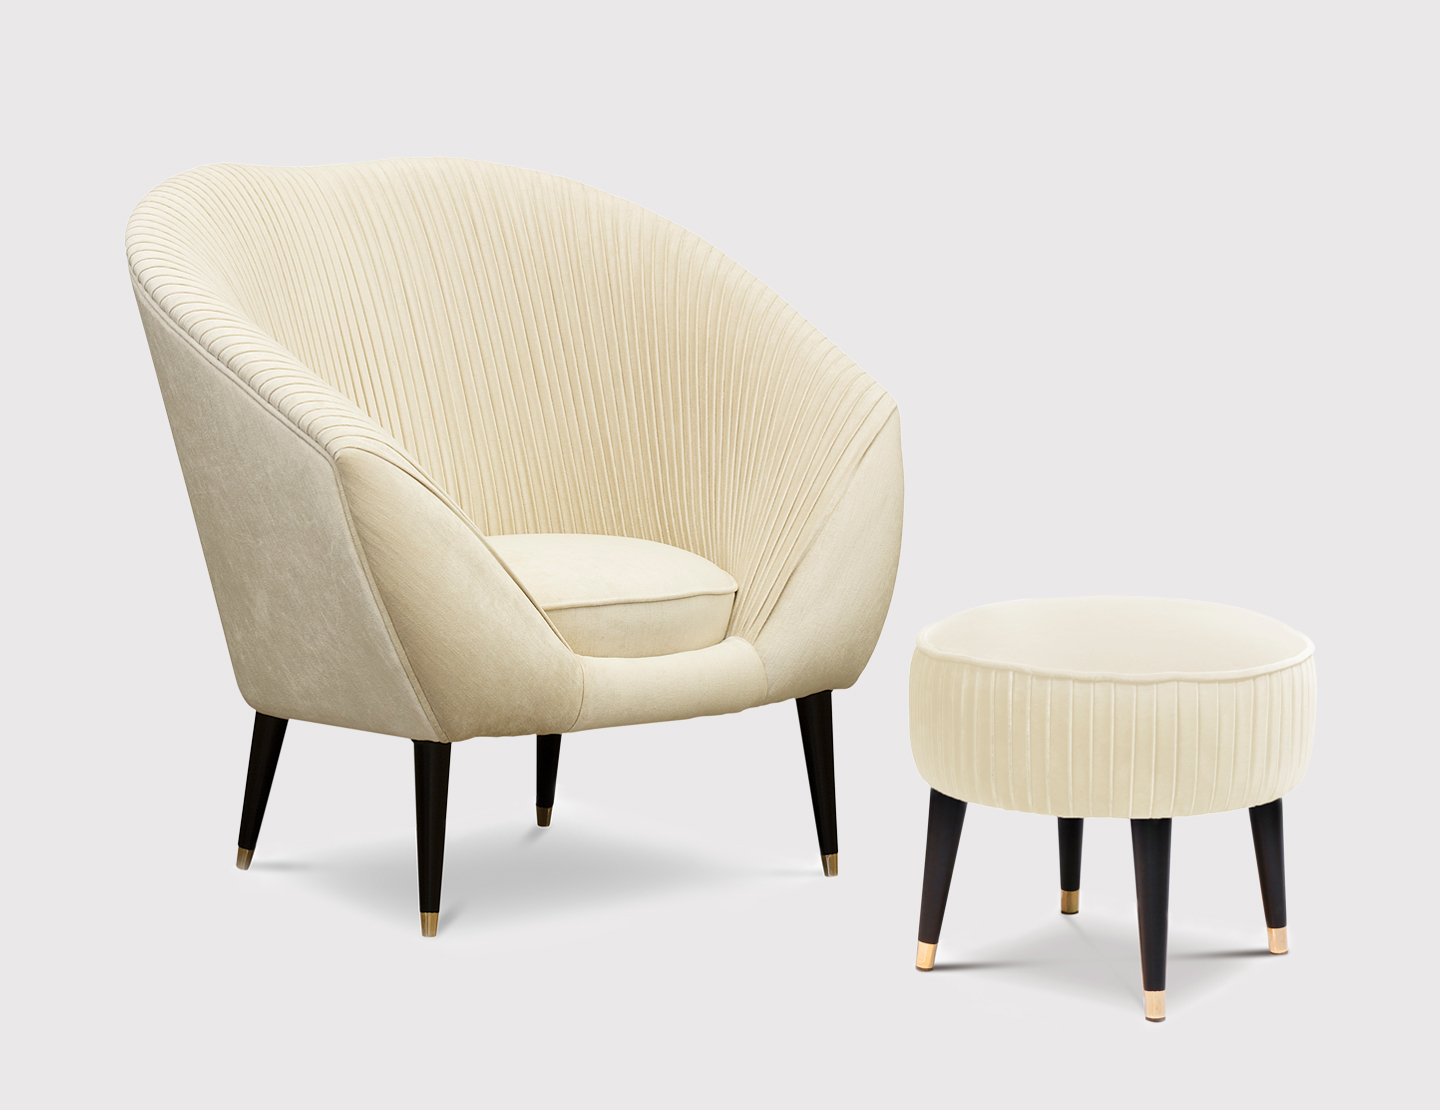 Audrey Chair by KOKET & AUDREY Chair | Luxury chair by Koket